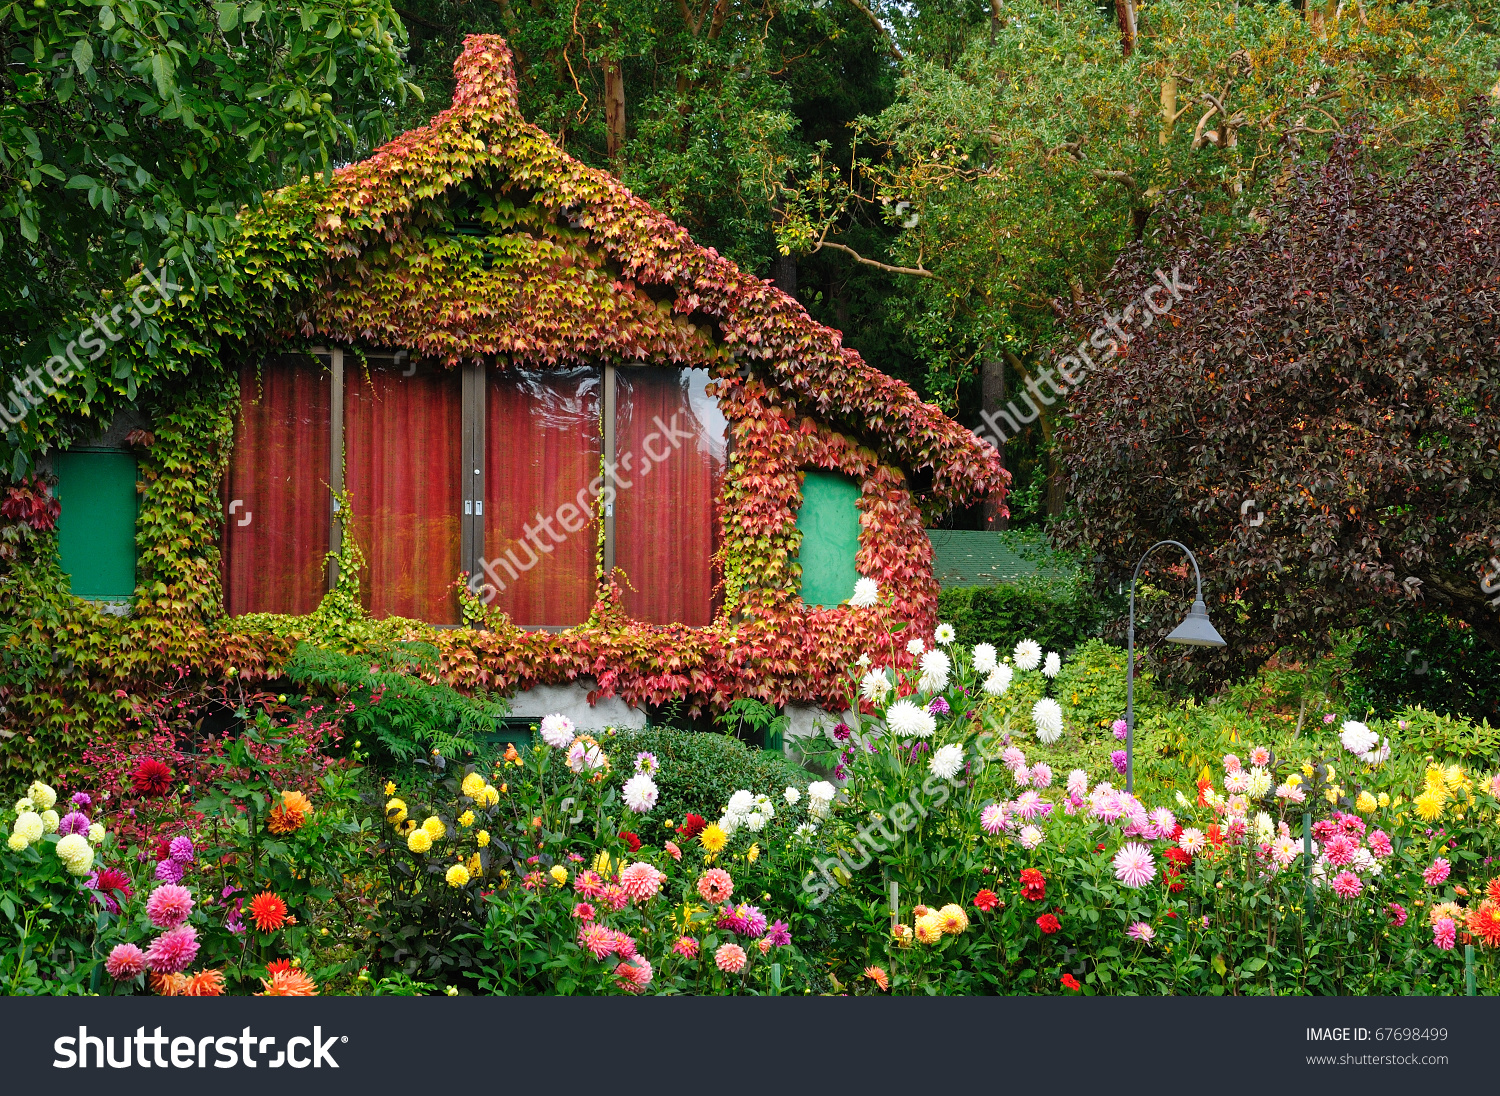 Vintage Garden House Butchart Gardens Victoria Stock Photo.